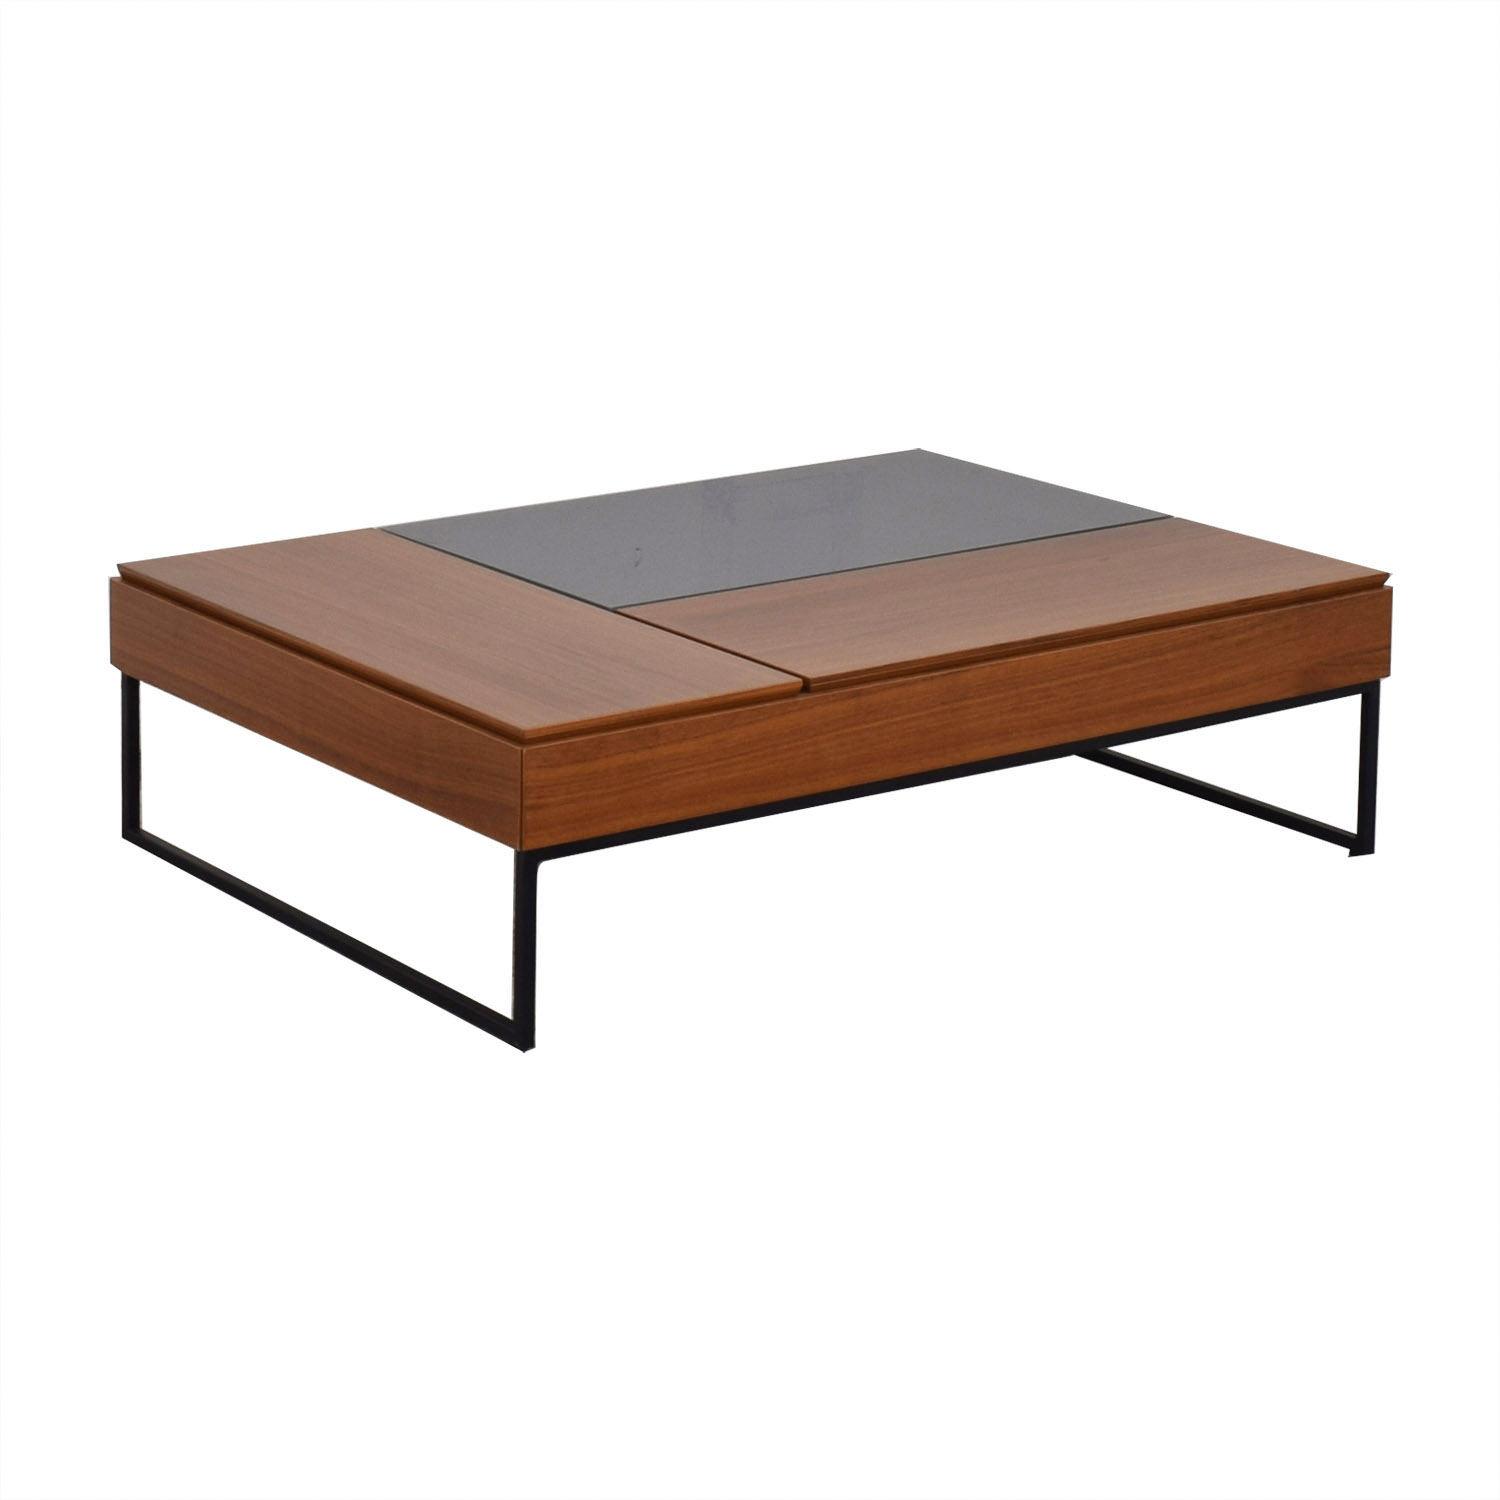 BoConcept BoConcept Chiva Functional Coffee Table with Storage discount